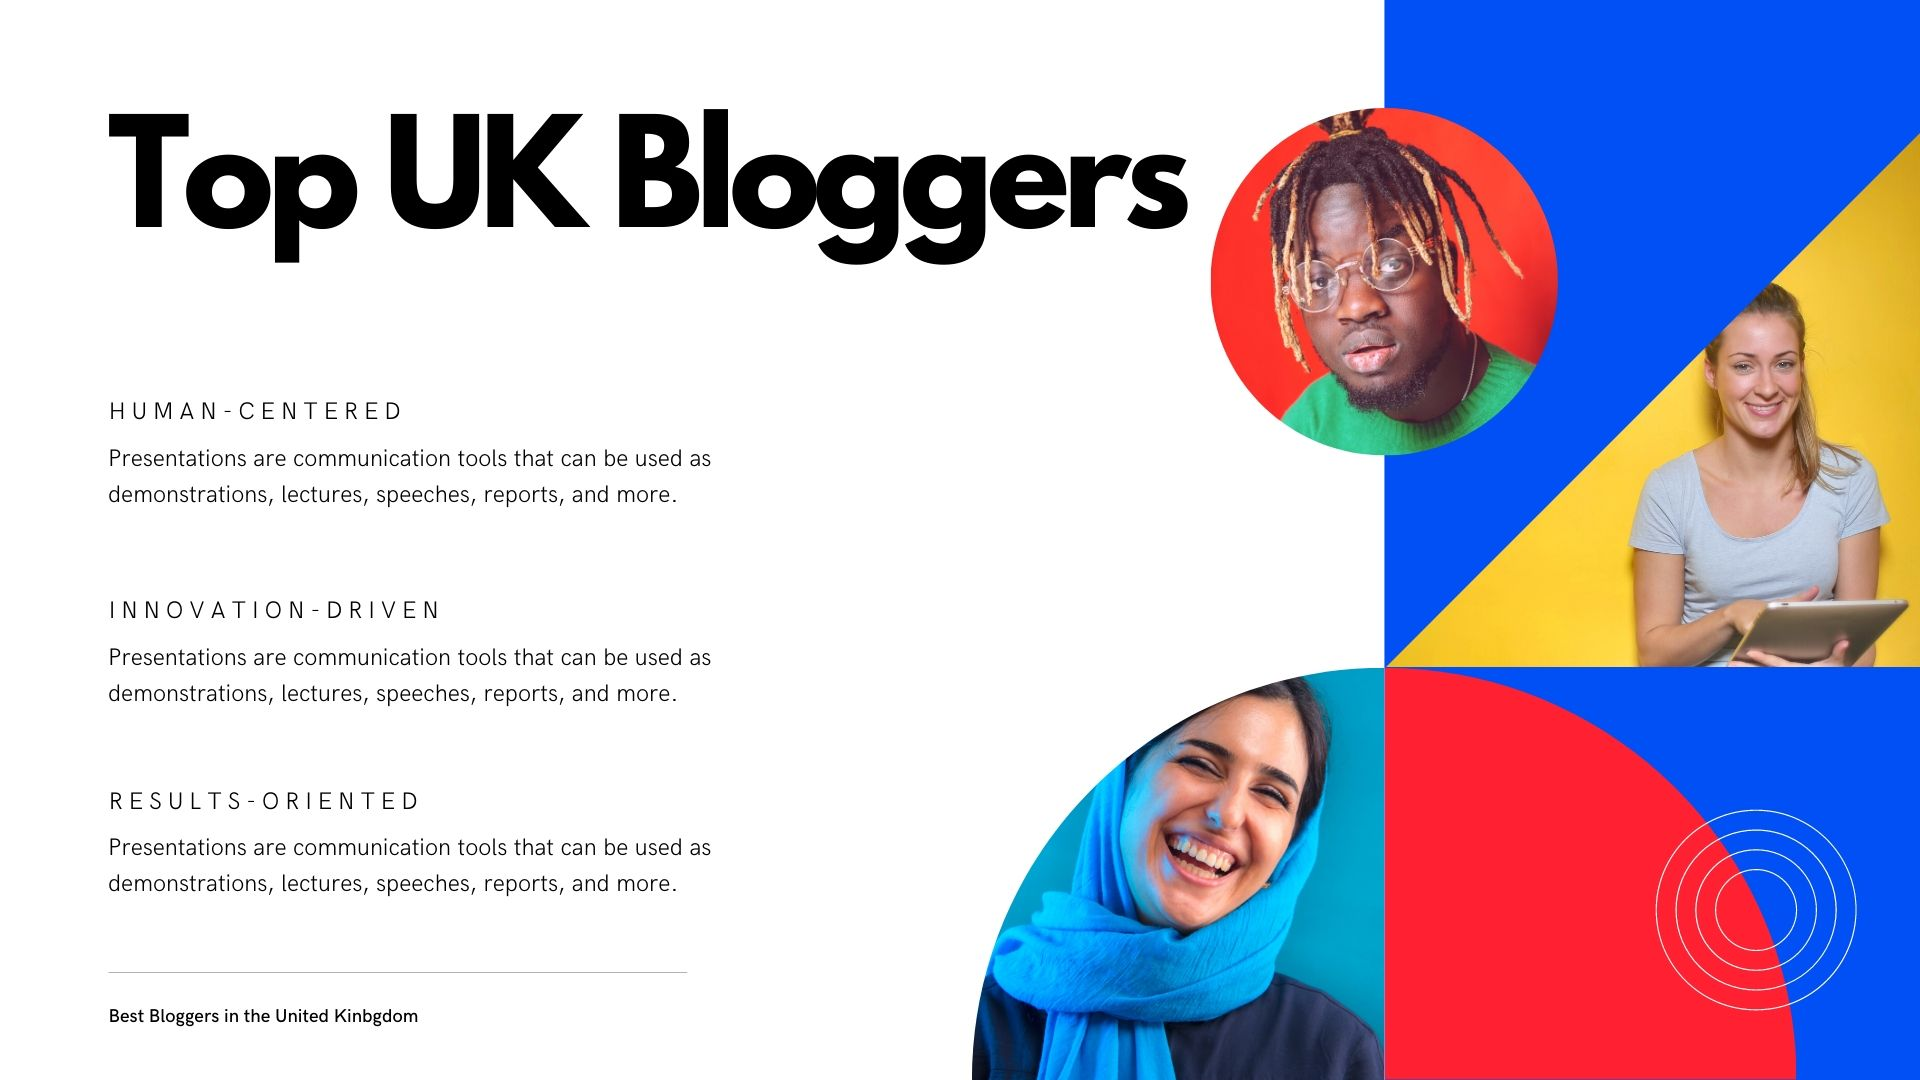 Top-UK-Bloggers